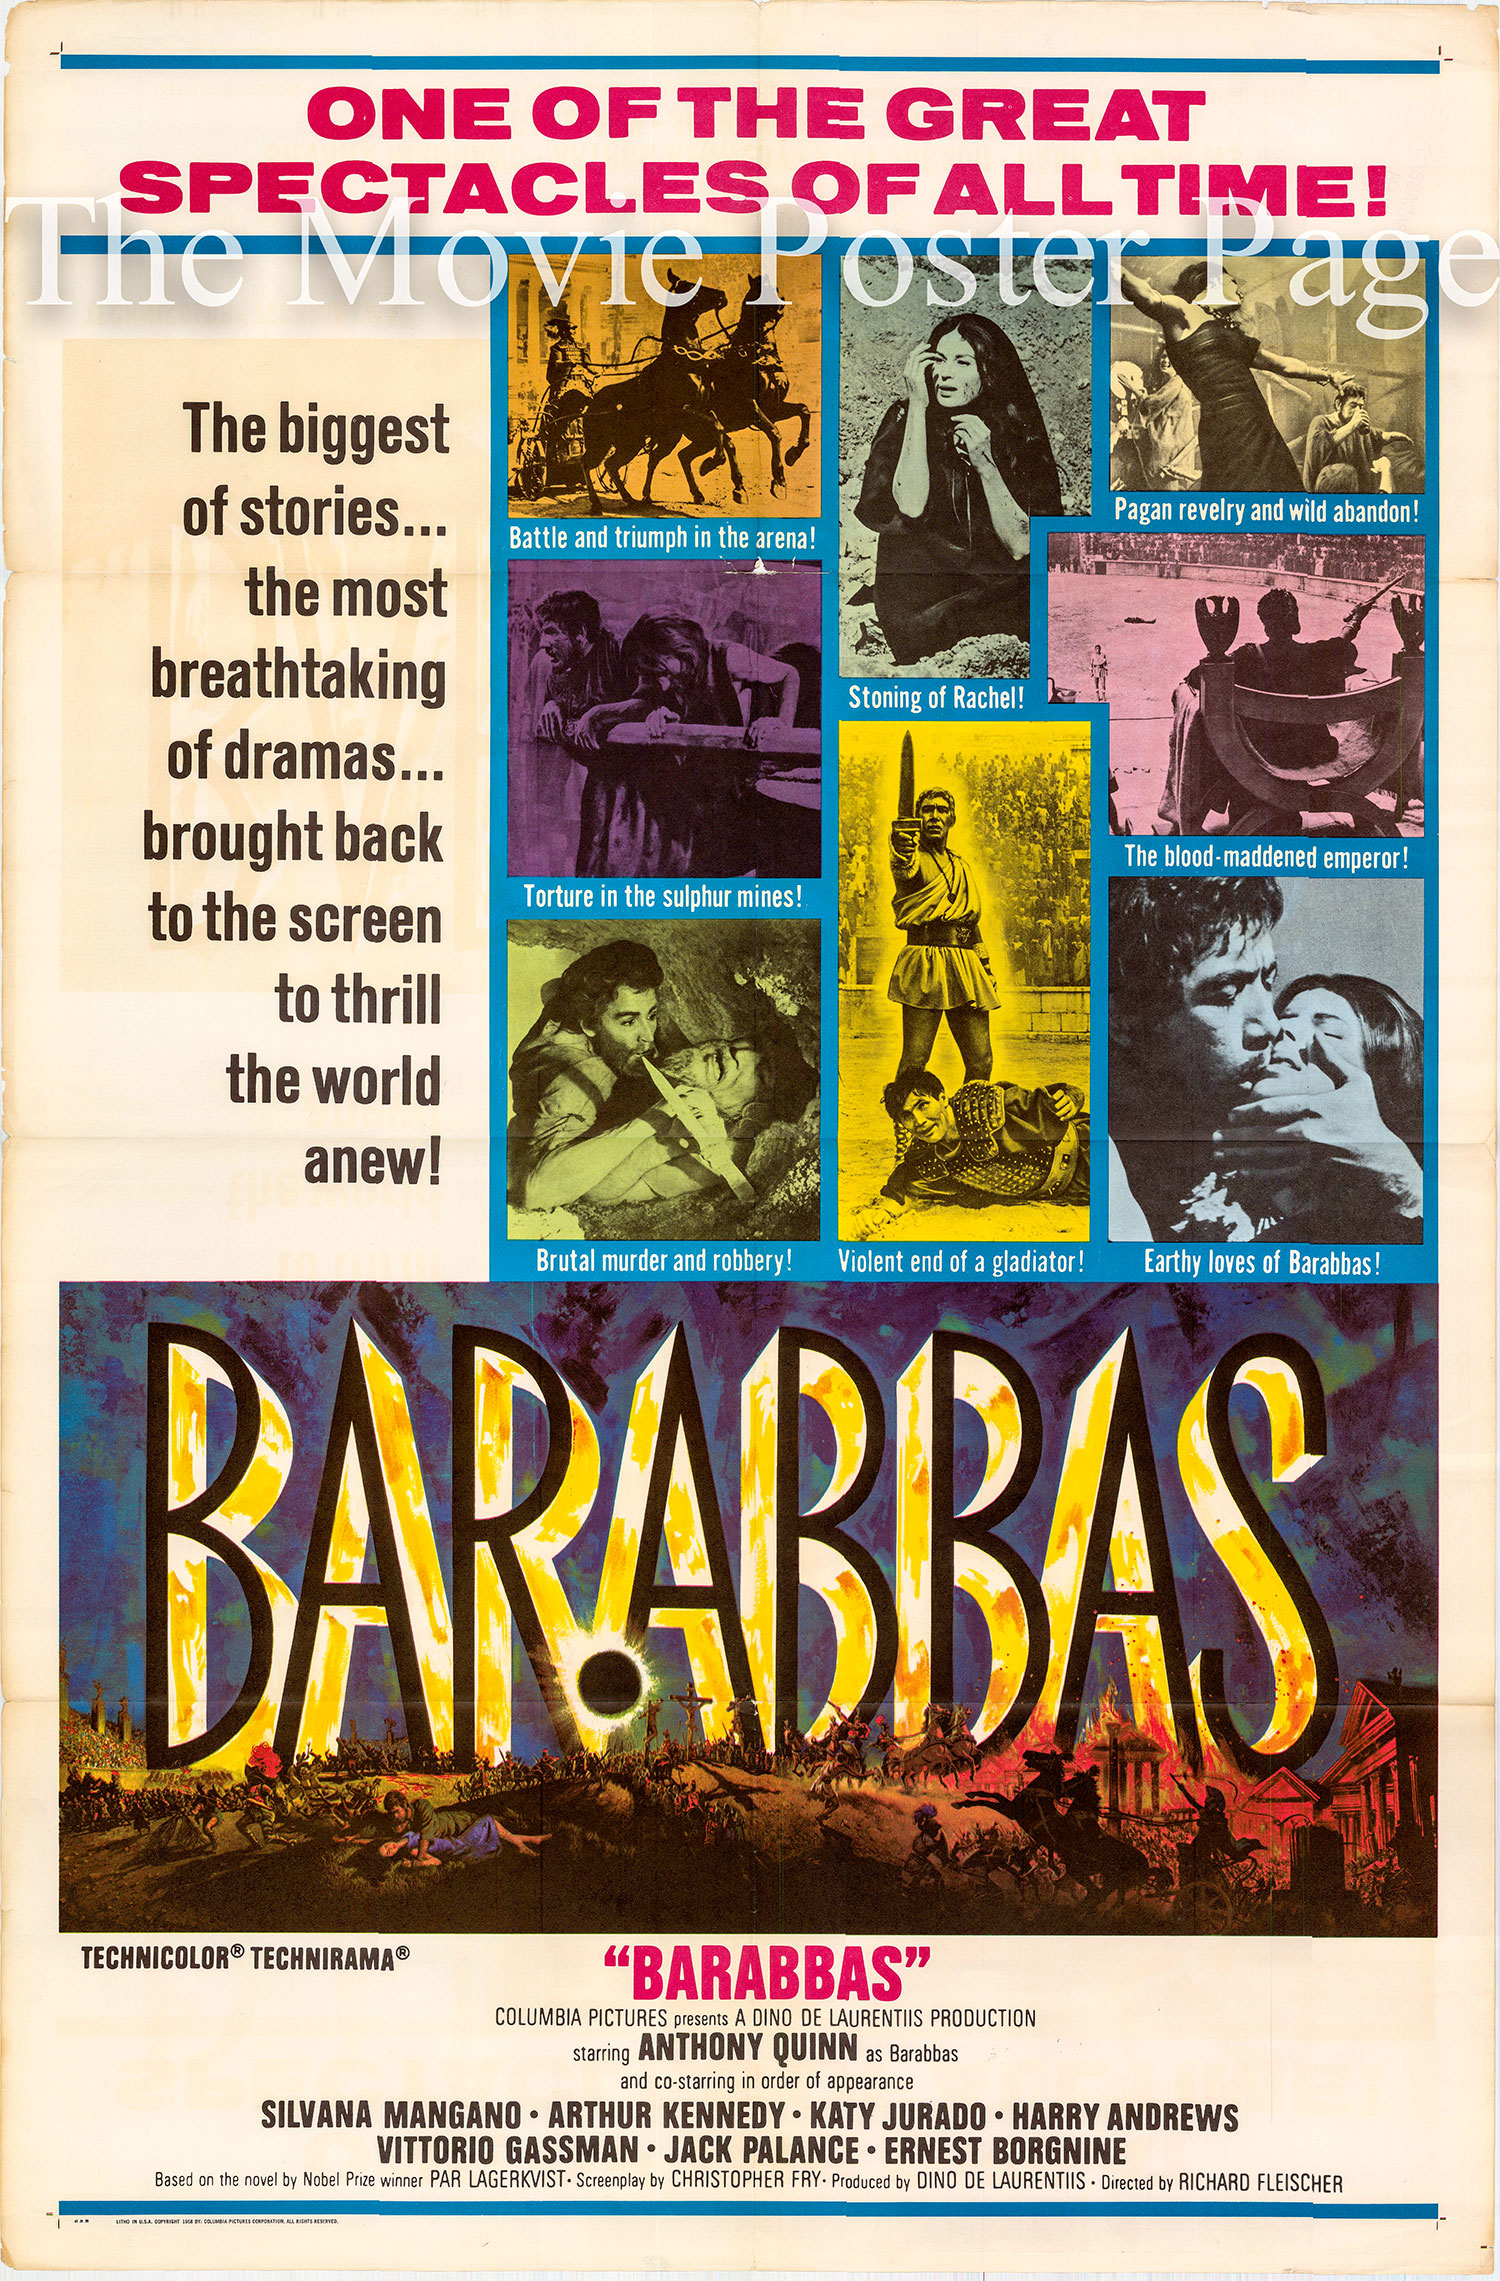 Pictured is a US one-sheet promotional poster for the 1961 Richard Fleischer film Barabbas starring Anthony Quinn.